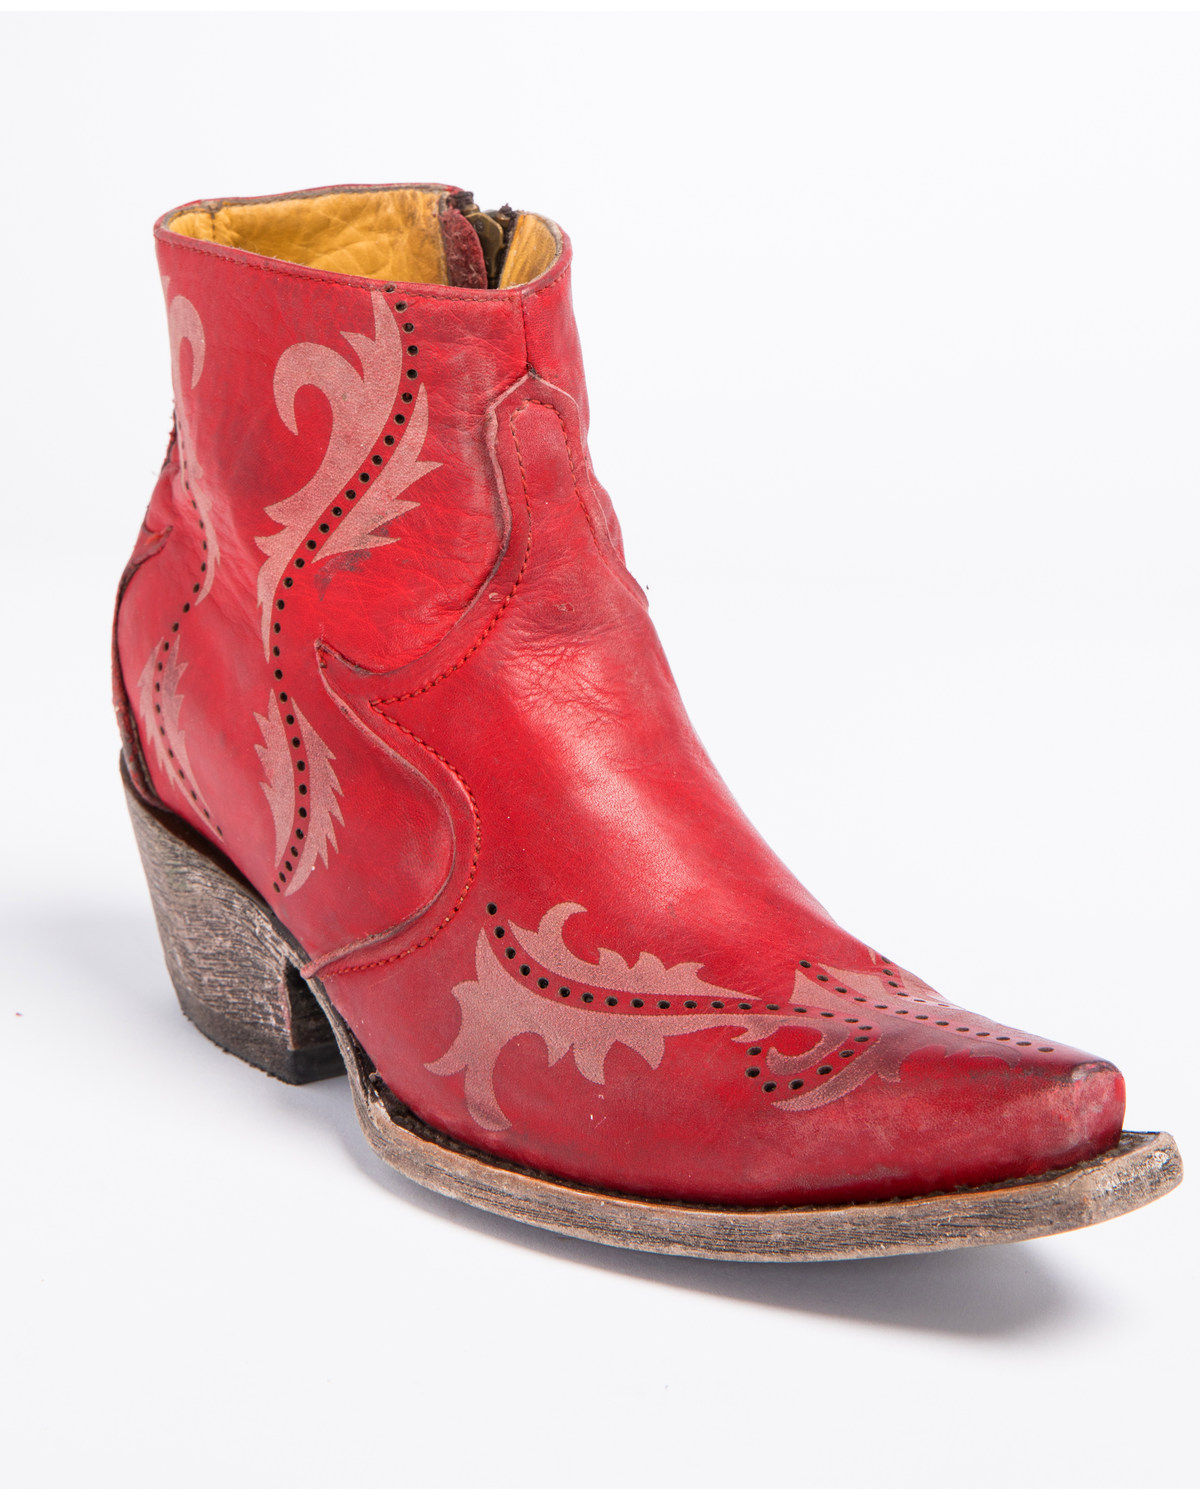 Corral Women S Red Perforated Ankle Boots Snip Toe